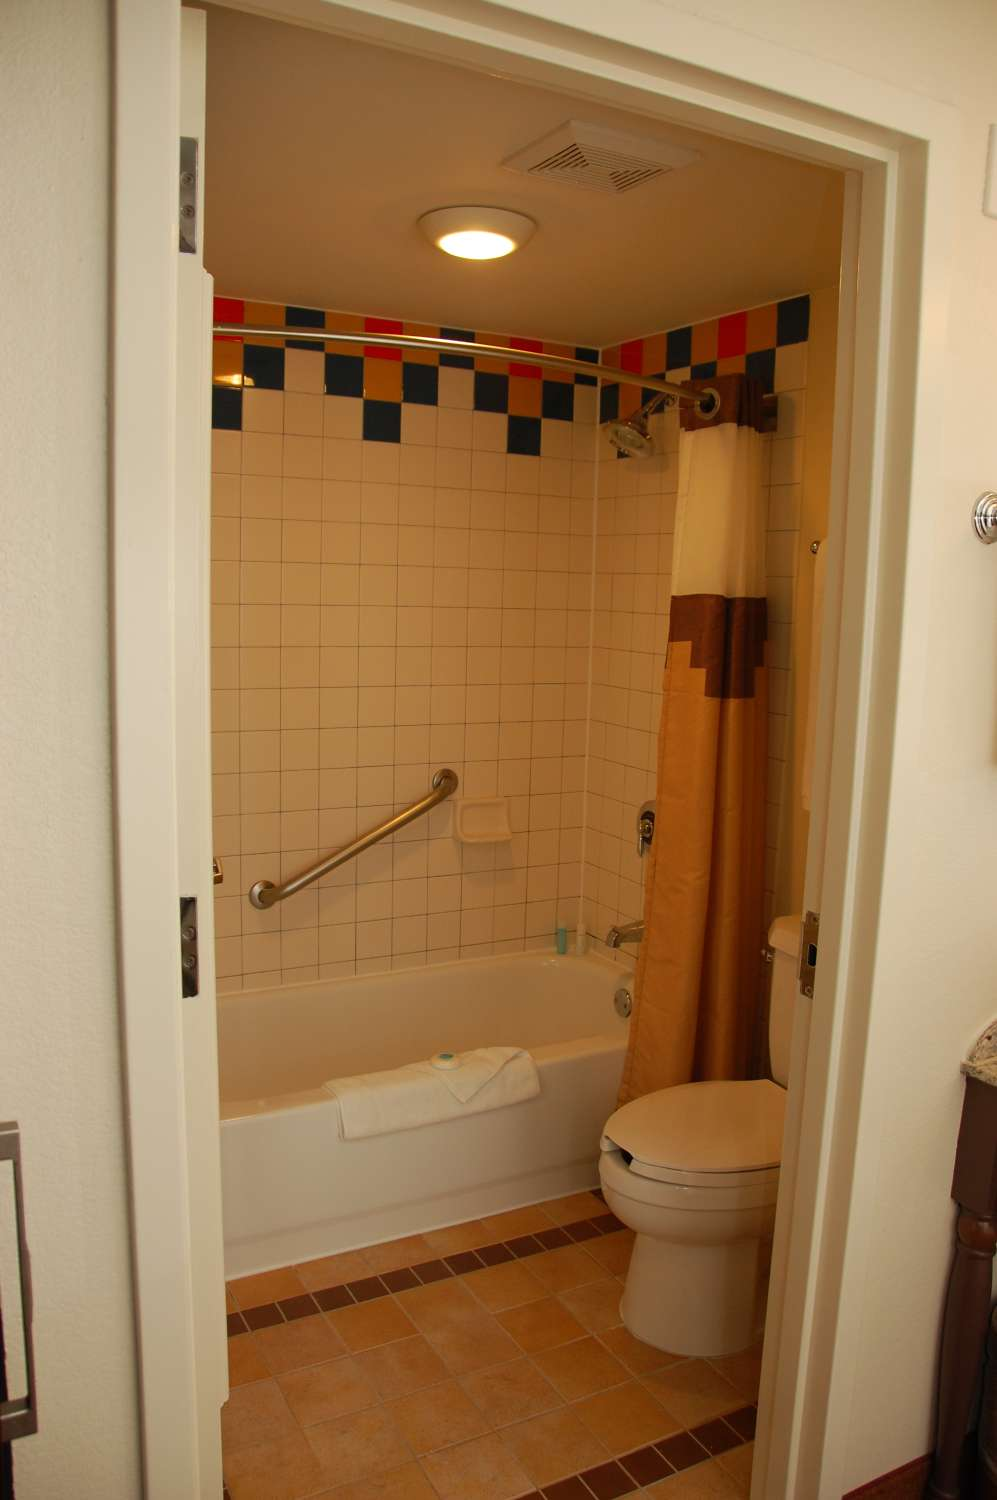 coronado-springs-047-Room-bathroom.JPG